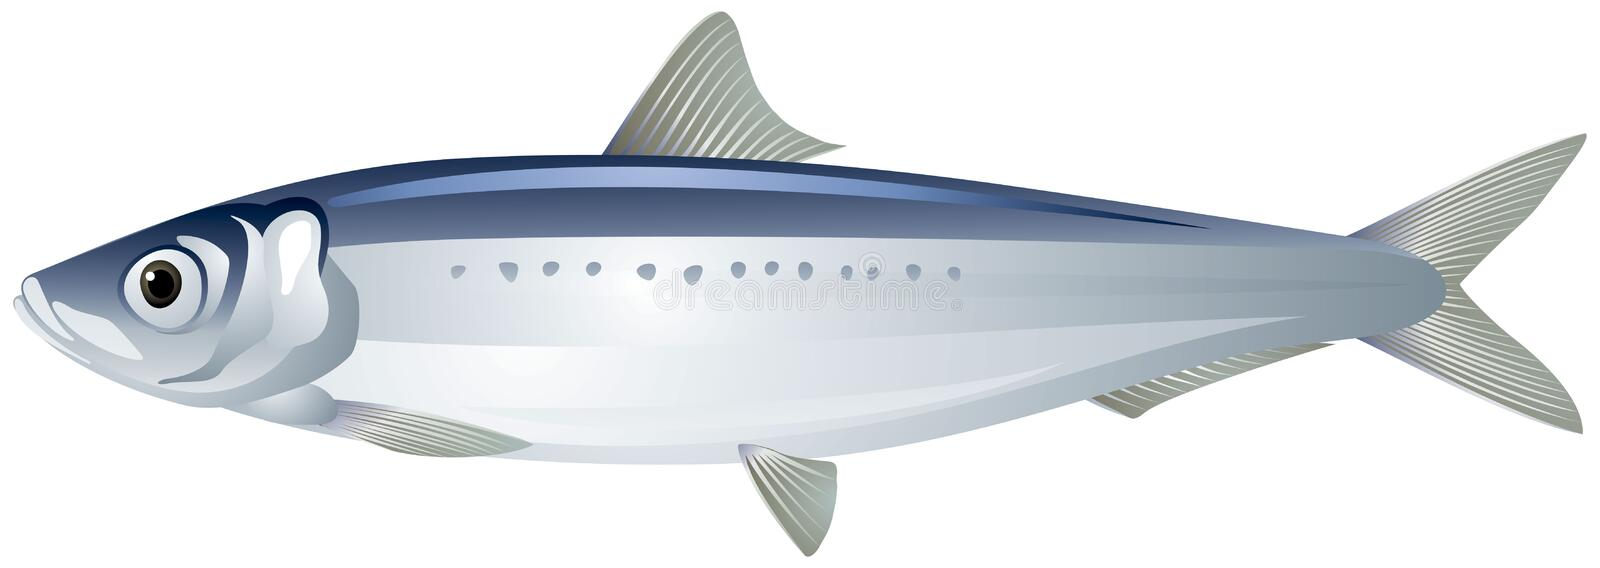 Iwashi Pacific Sardine Japanese Sardine or Iwashi Herring fish realistic vector illustration. Iwashi Sardine also known as Pacific Sardine, Japanese Sardine or royalty free illustration